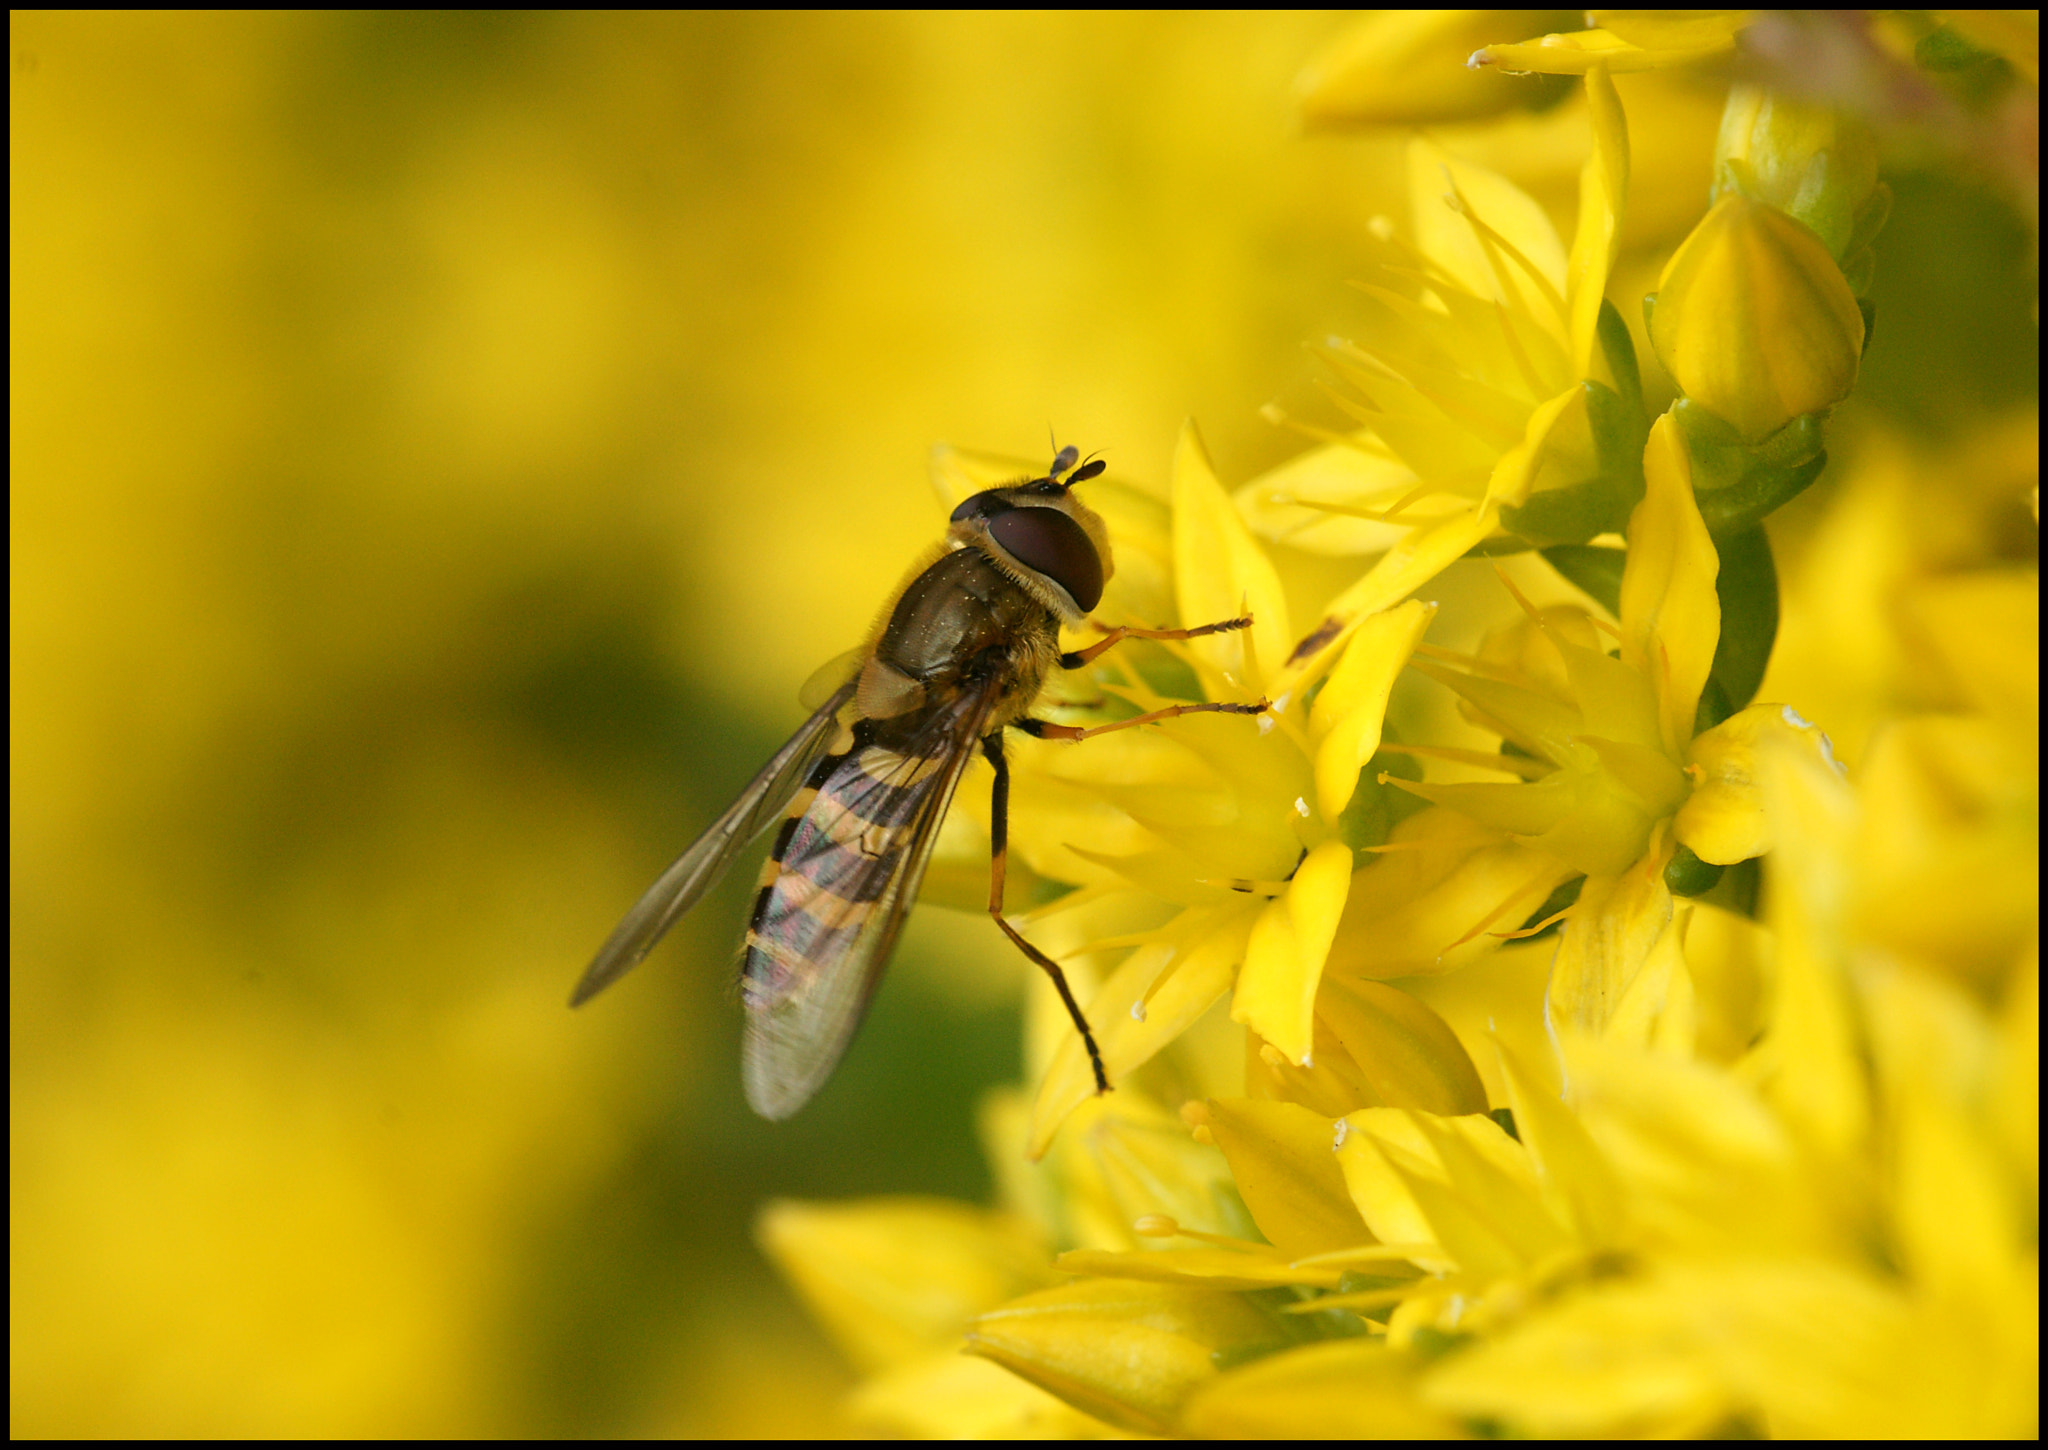 Photograph Hoverfly on Stonecrop by Mike Turtle on 500px